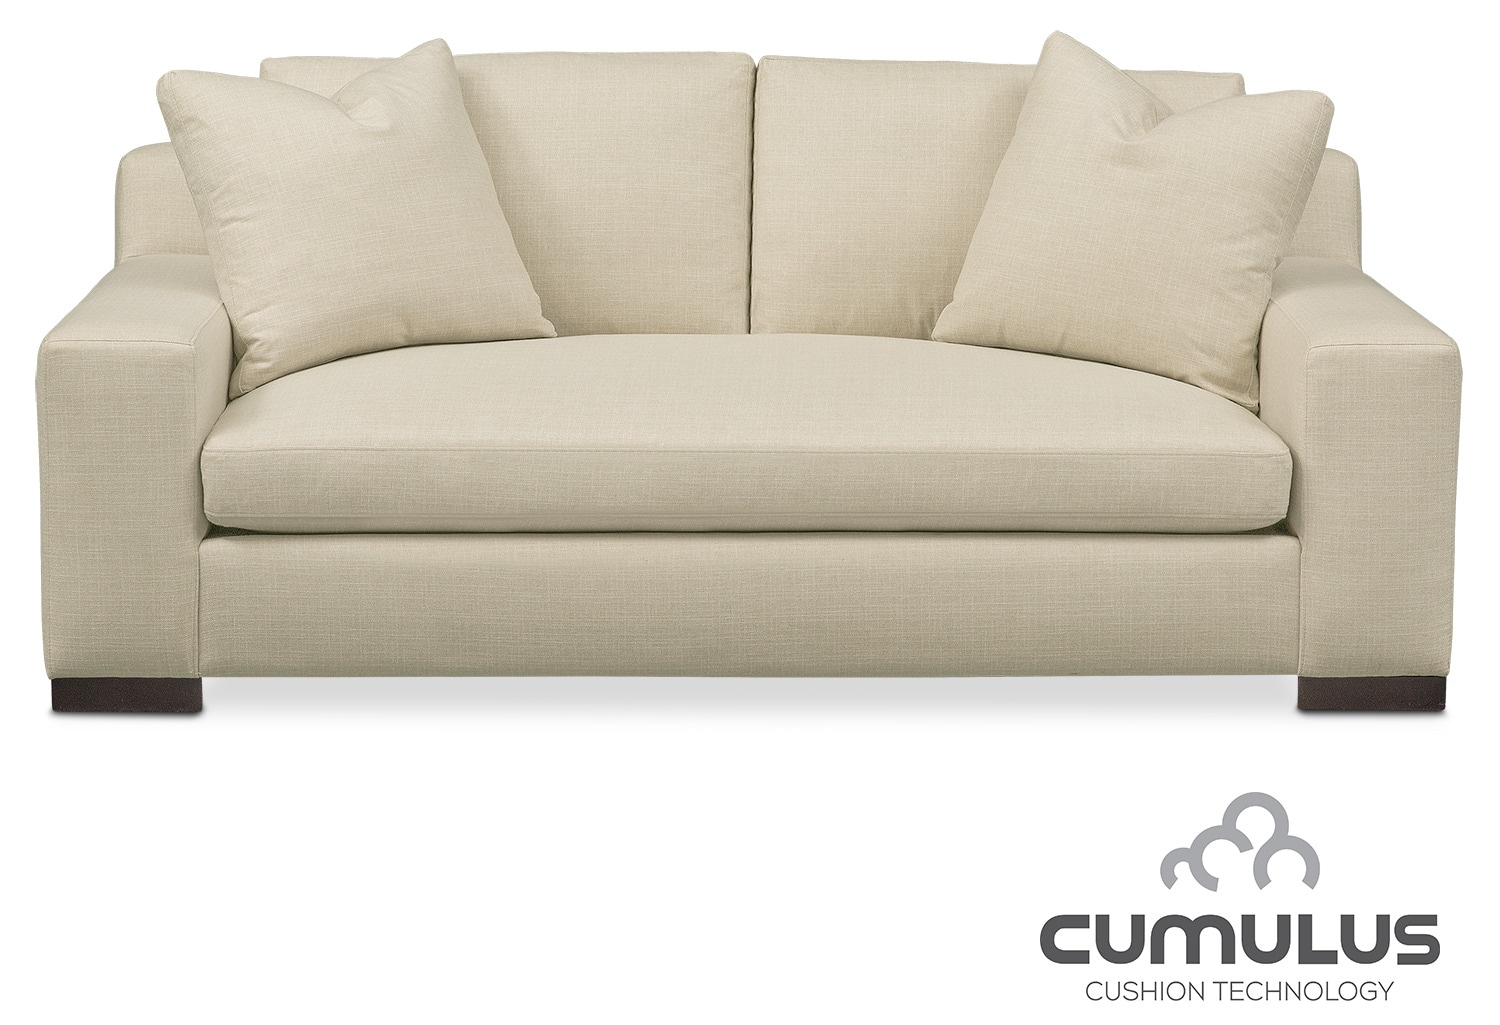 Living Room Furniture - Ethan Cumulus Apartment Sofa - Cream